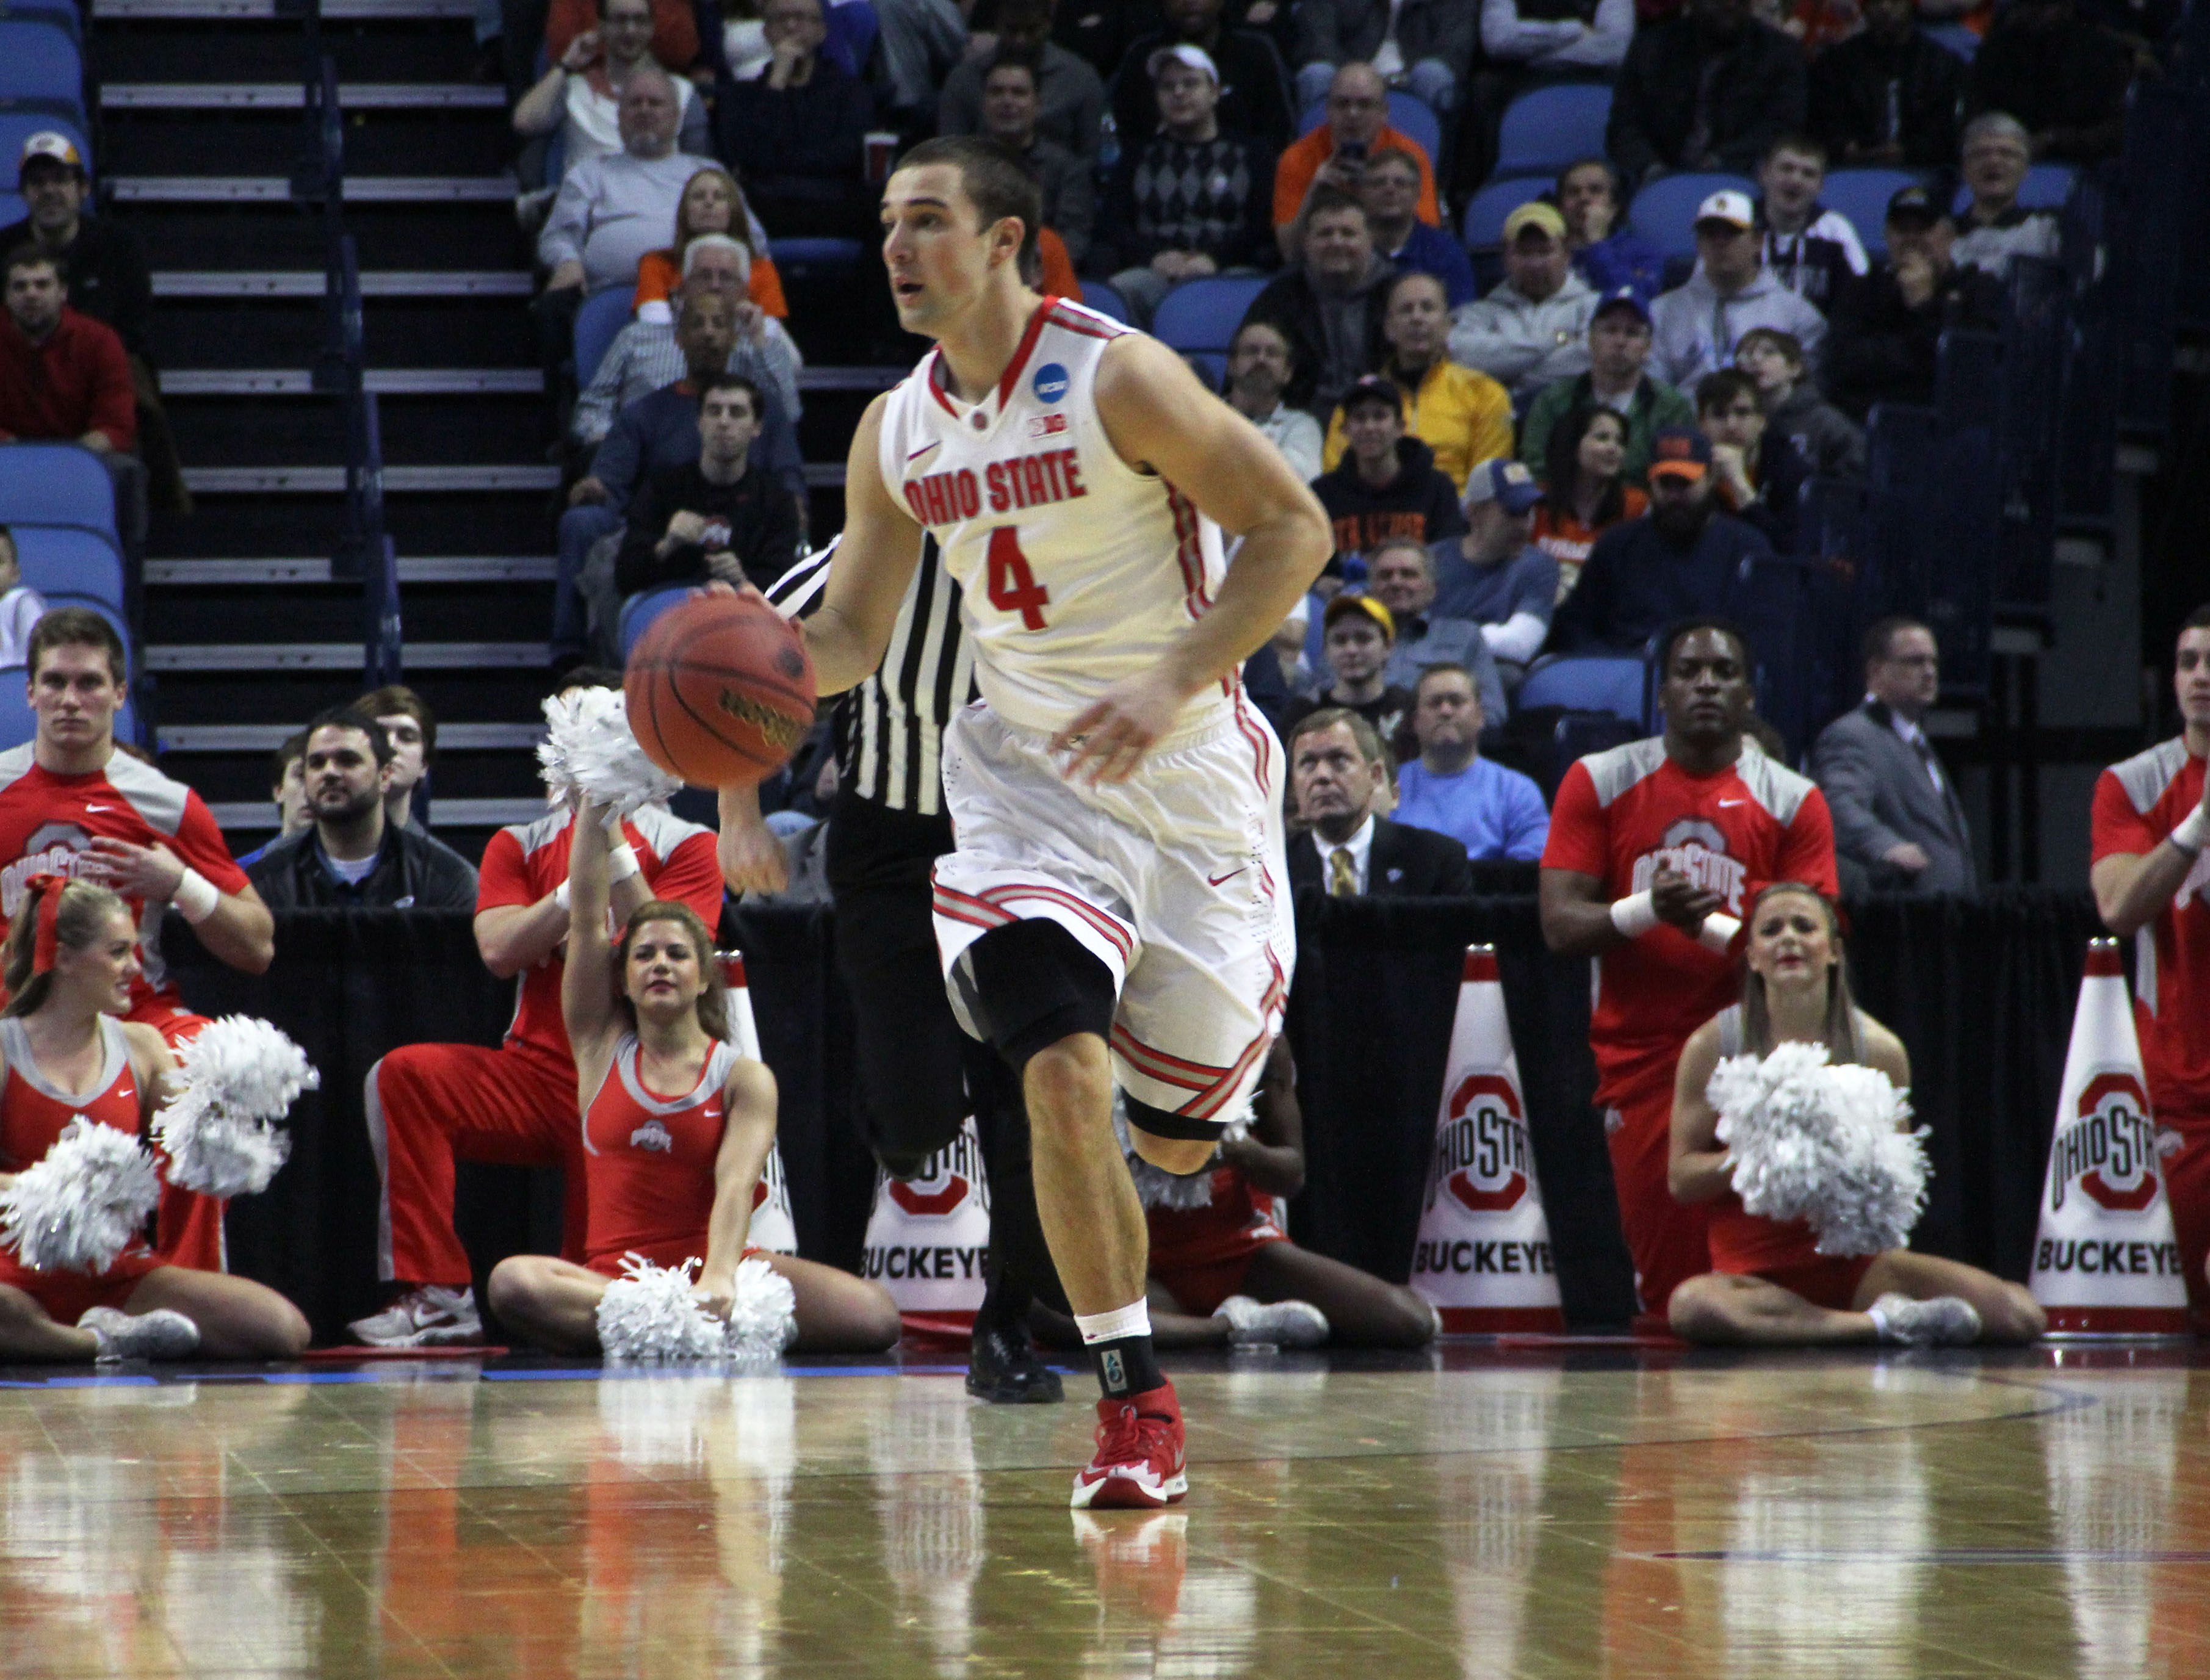 Senior guard Aaron Craft (4) carries the ball down the court in a game against Dayton. OSU lost, 60-59, at First Niagara Center March 20.